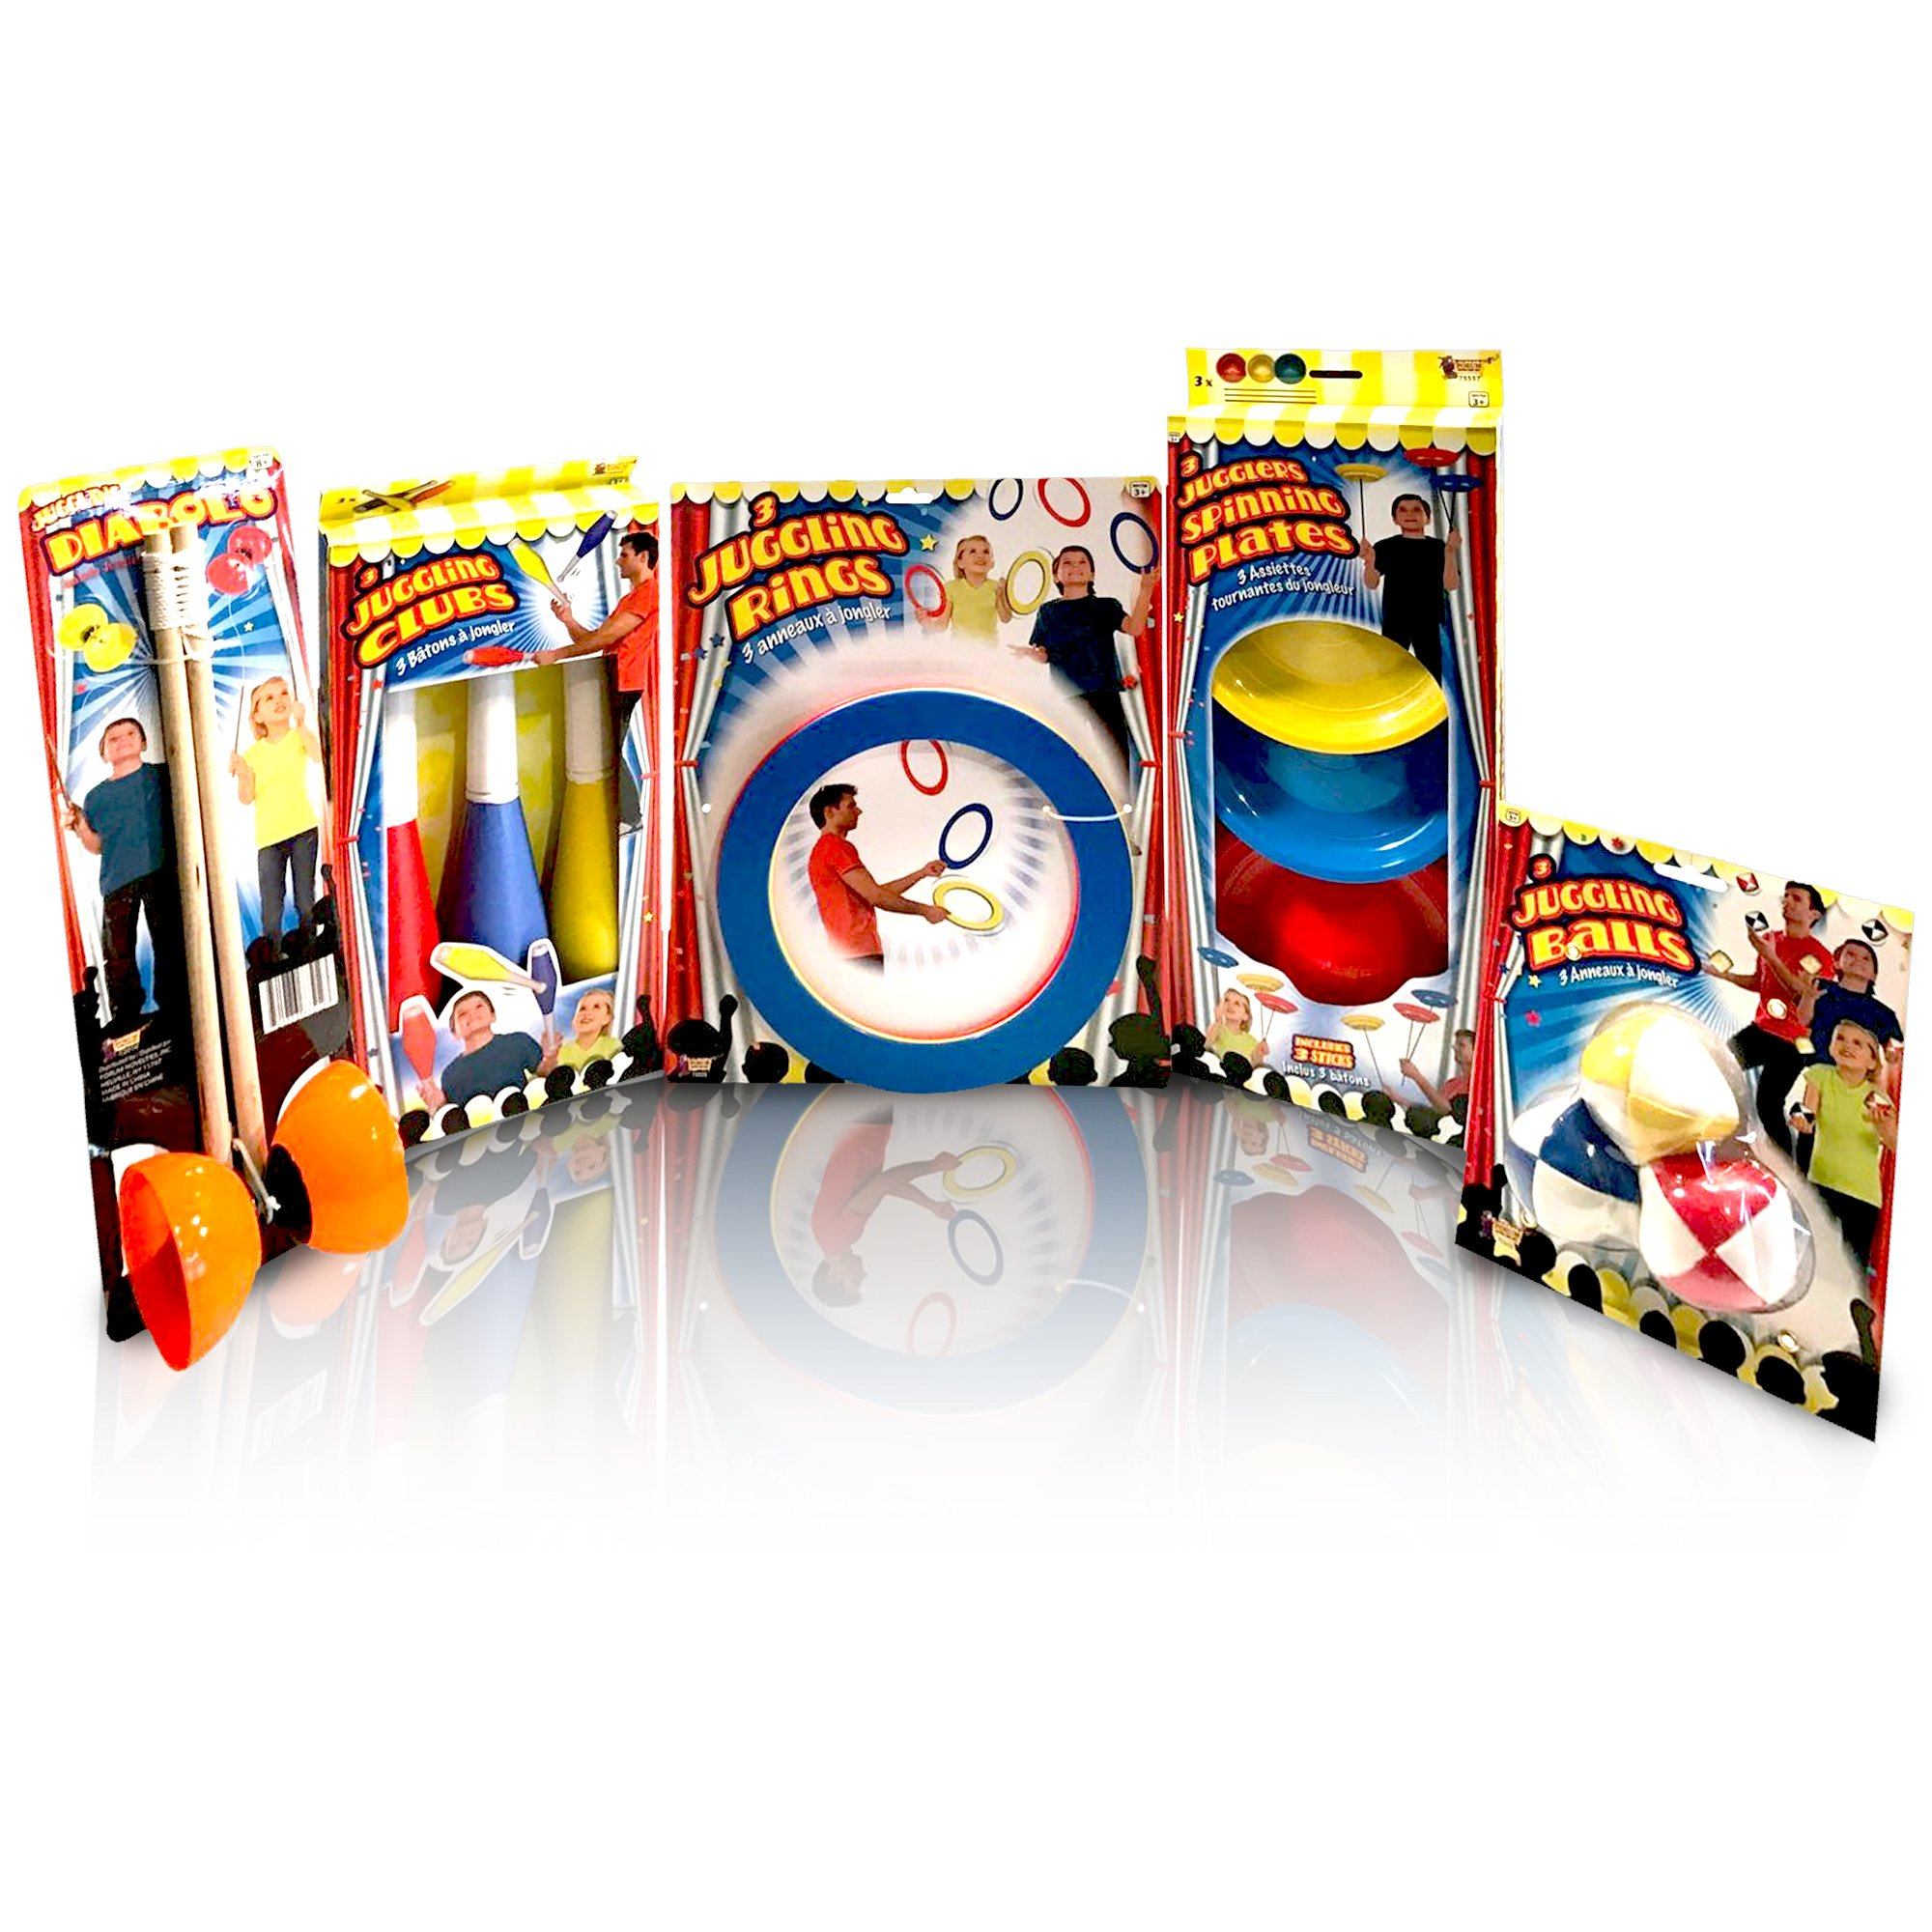 Beginners Juggling Kit - Balls (3), Pins (3), Plates (3), Rings (3), Chinese Yoyo Diabolo Advanced Set Cool Fun Unique Toy Gift Set For Boys and Girls